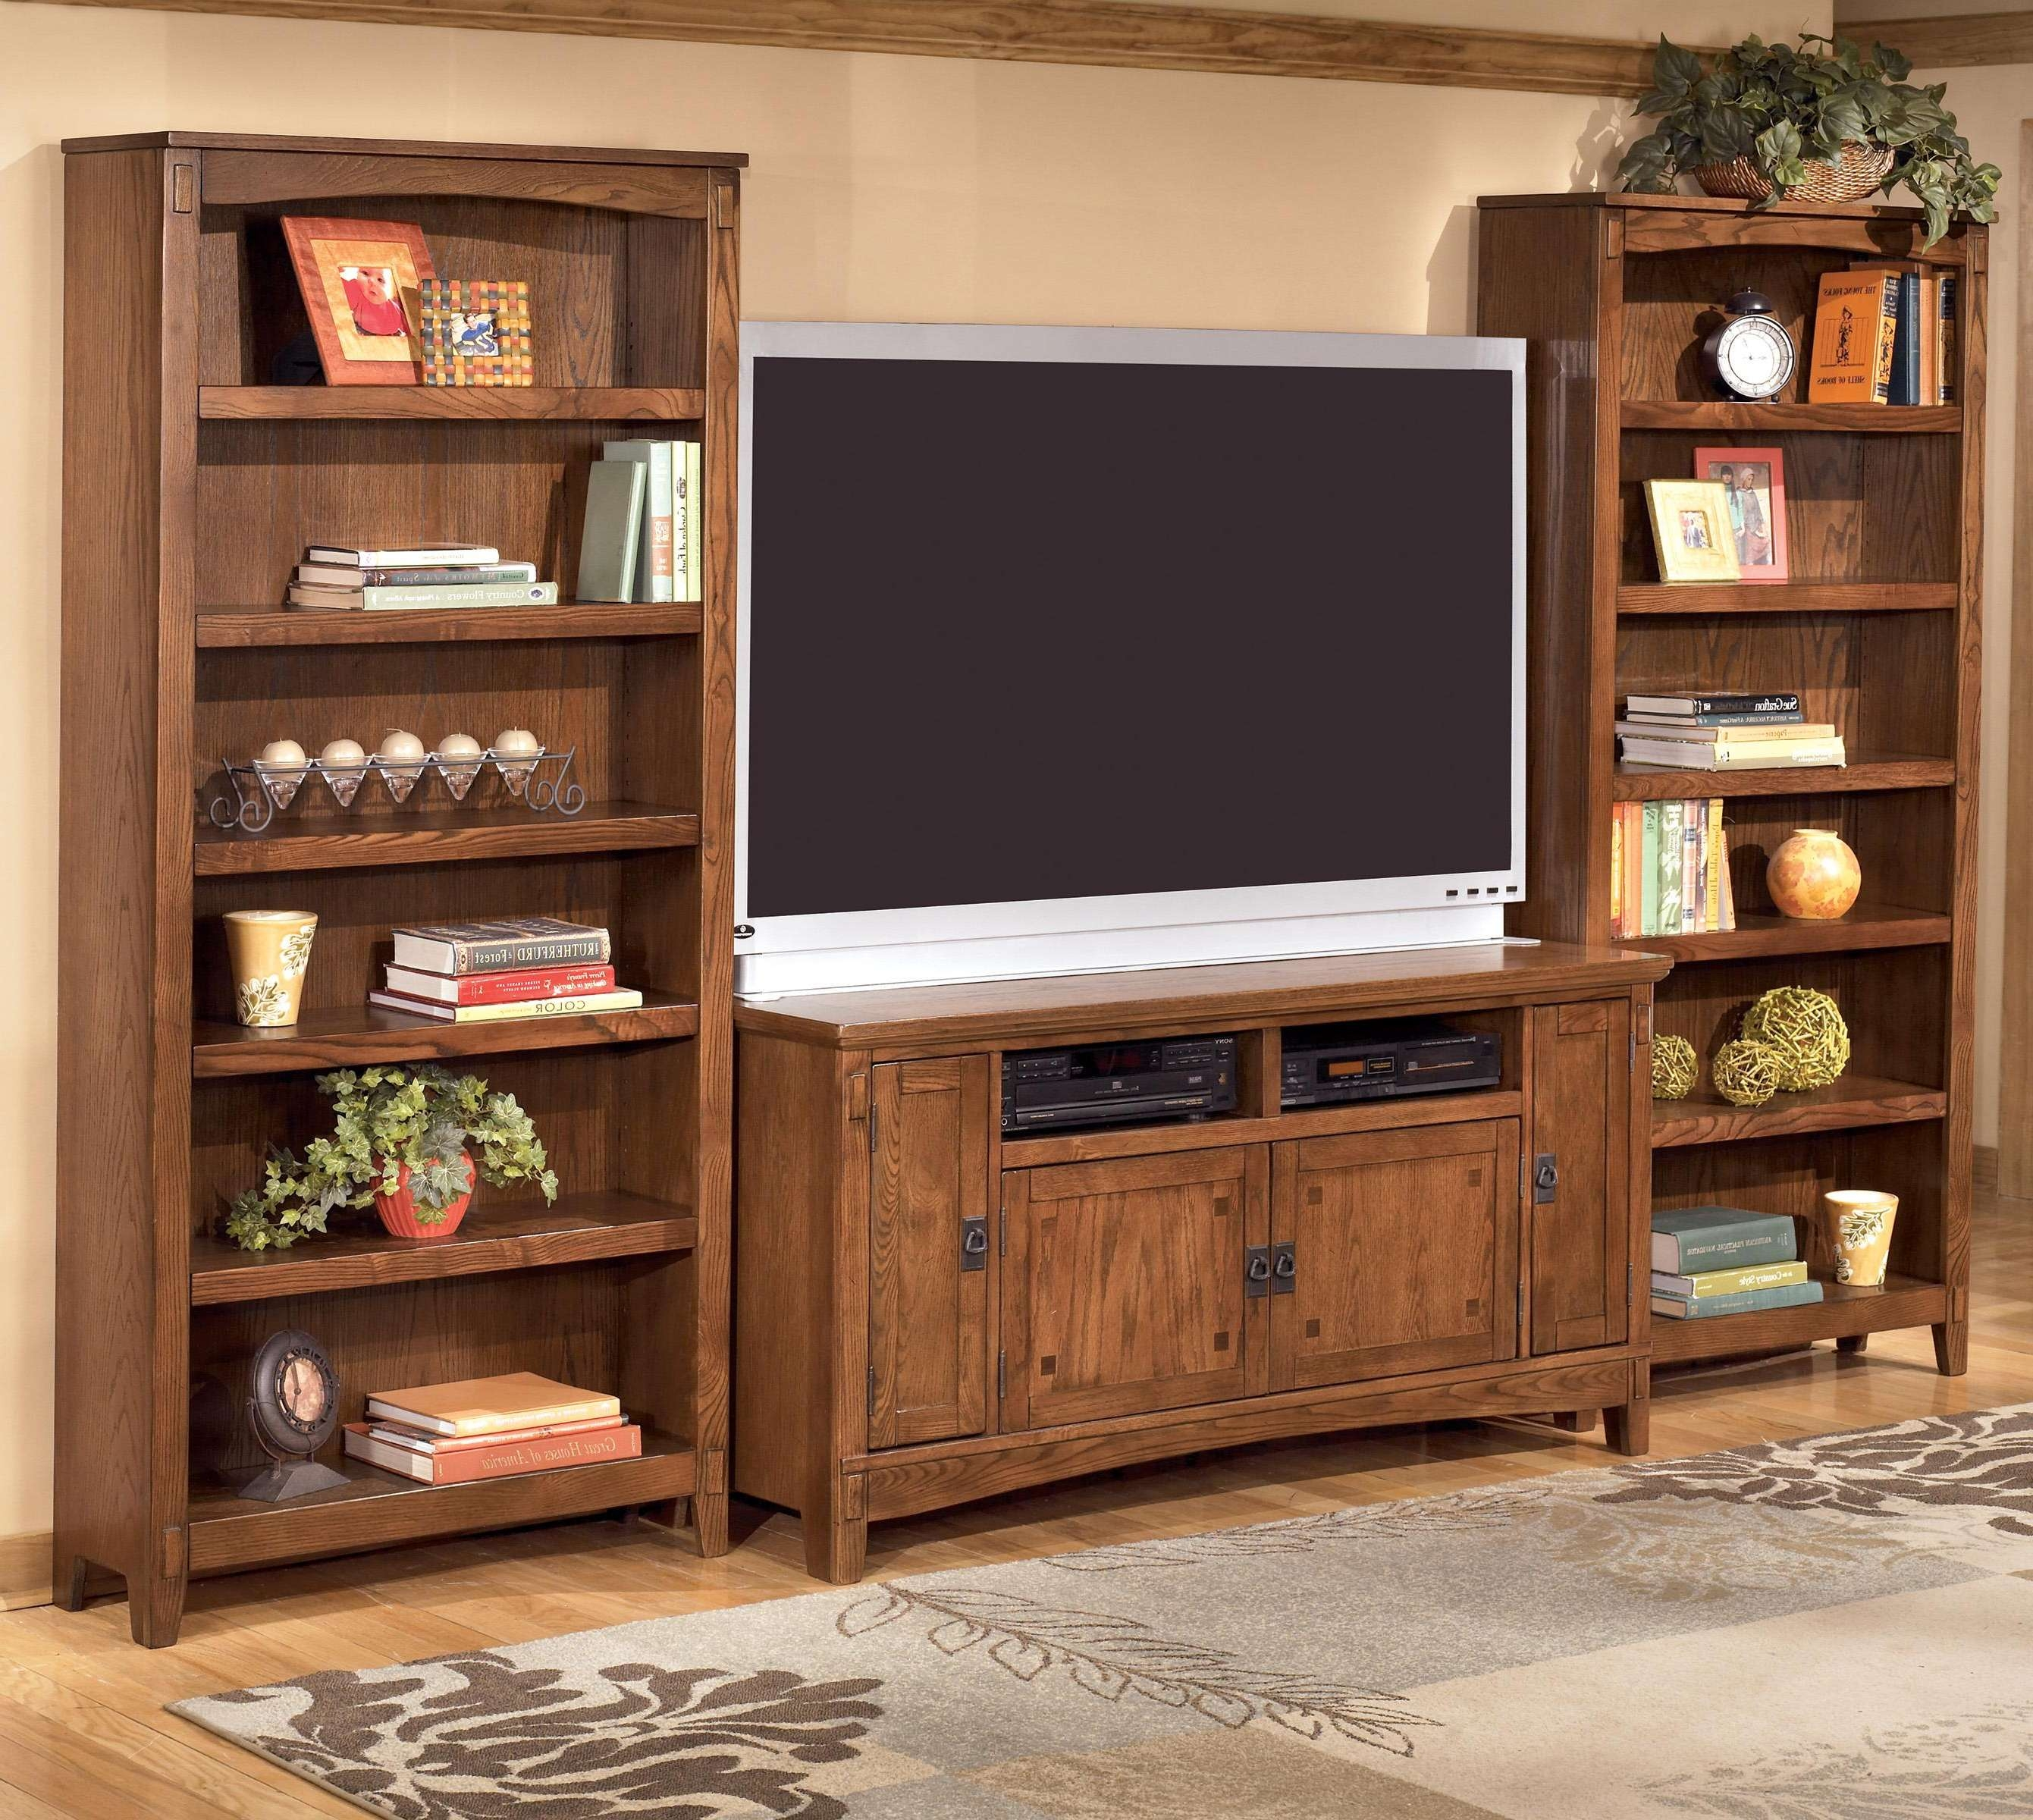 60 Inch Tv Stand & 2 Large Bookcasesashley Furniture | Wolf With Regard To Tv Stands With Bookcases (Gallery 1 of 15)